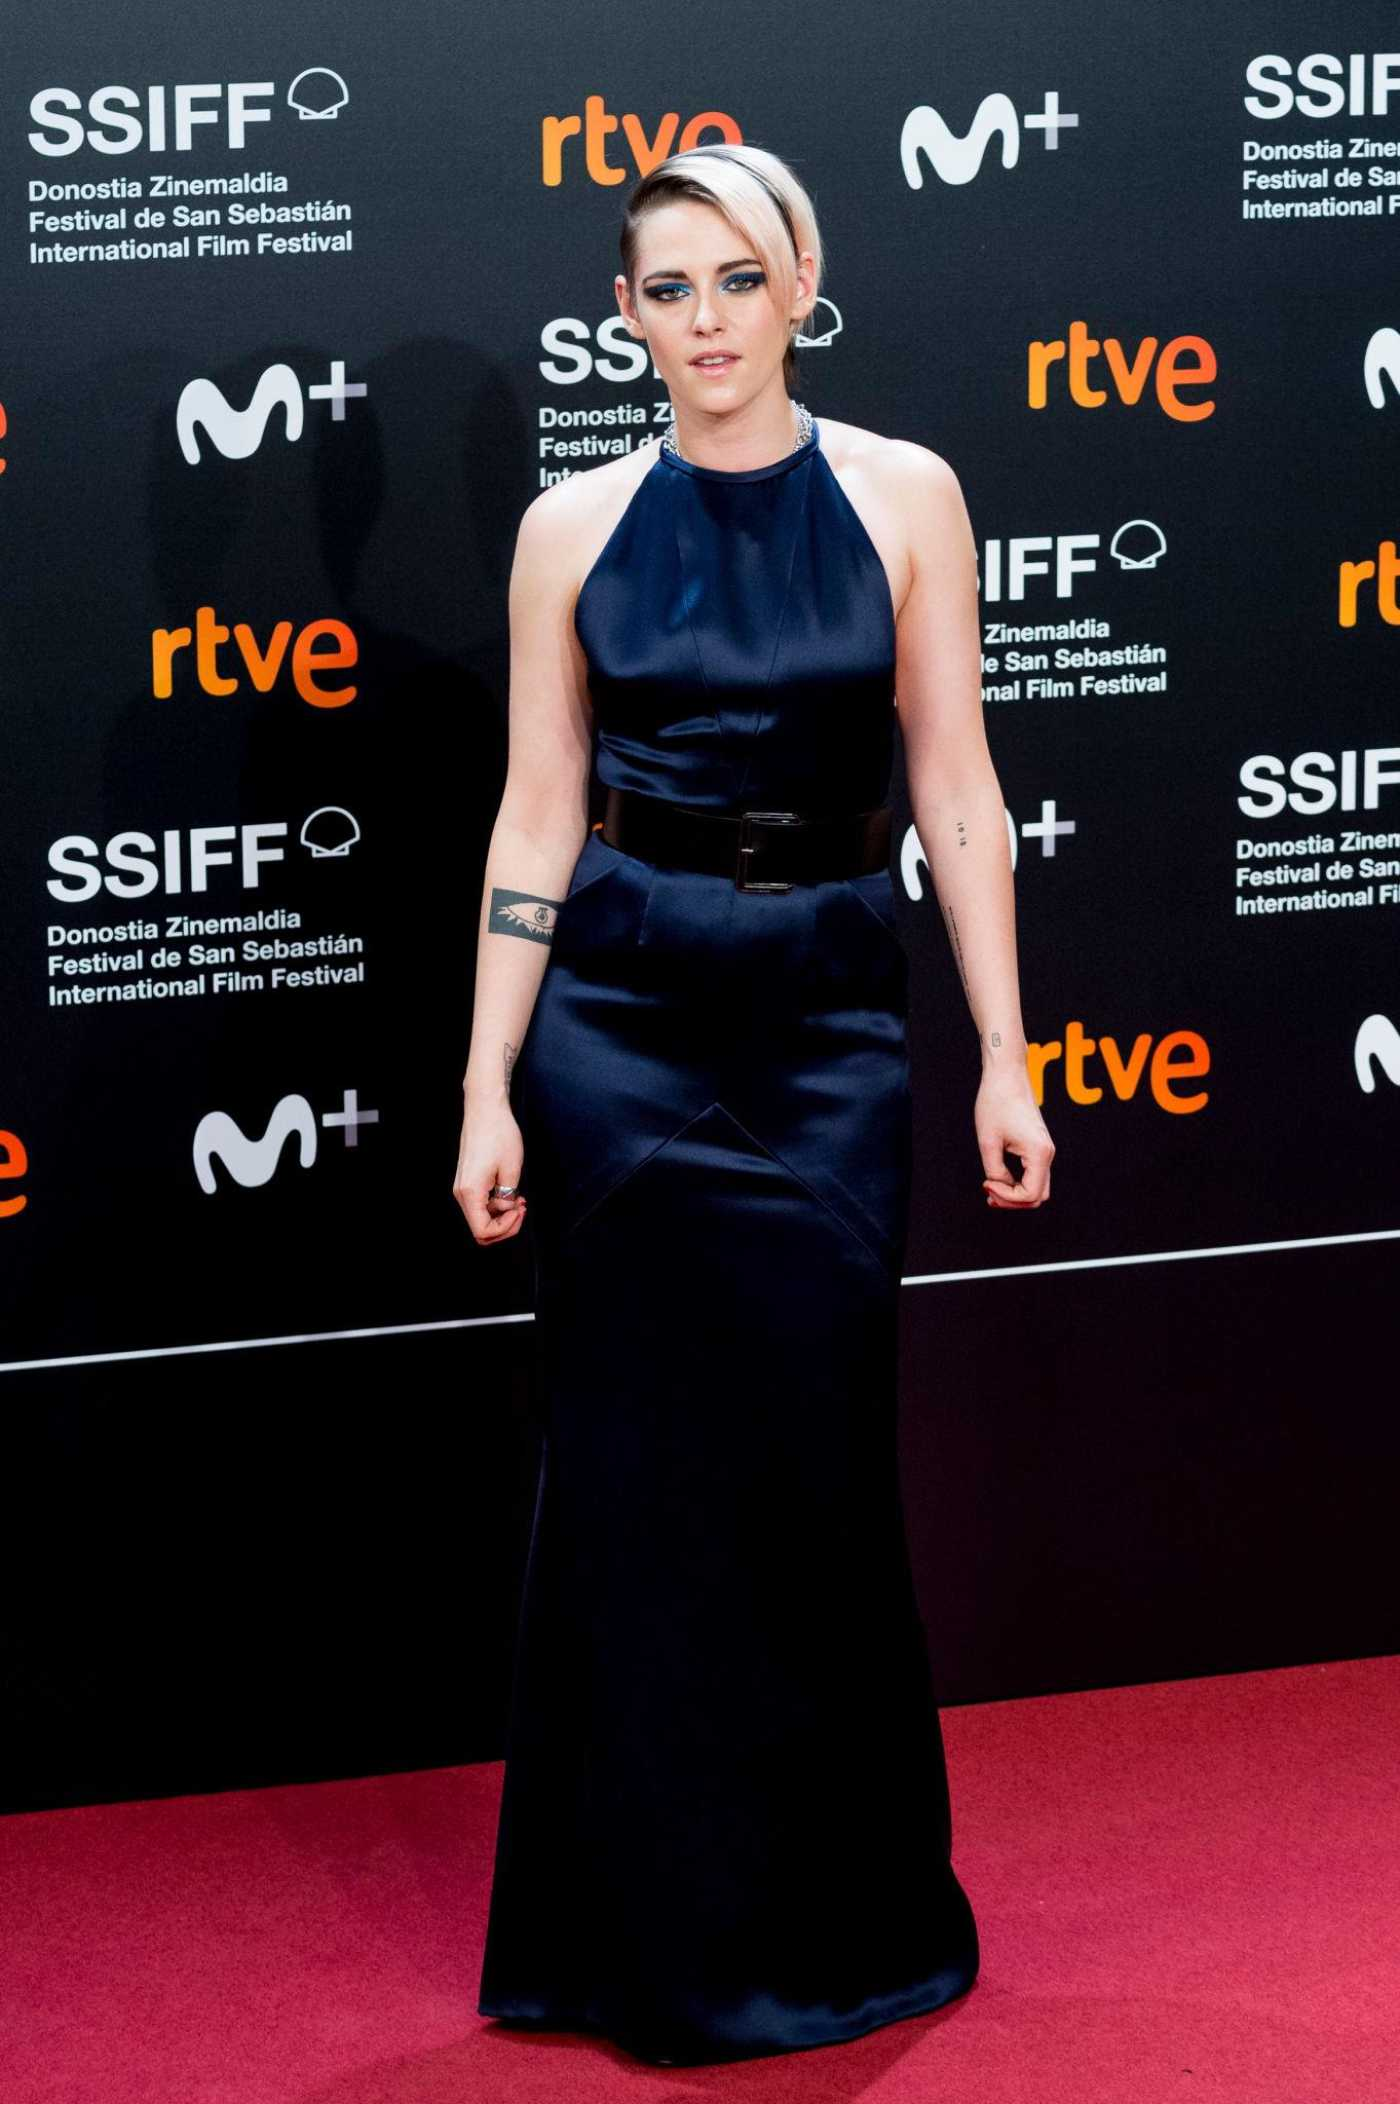 Kristen Stewart Attends Blackbird Premiere During the 67th San Sebastian Film Festival in San Sebastian 09/20/2019